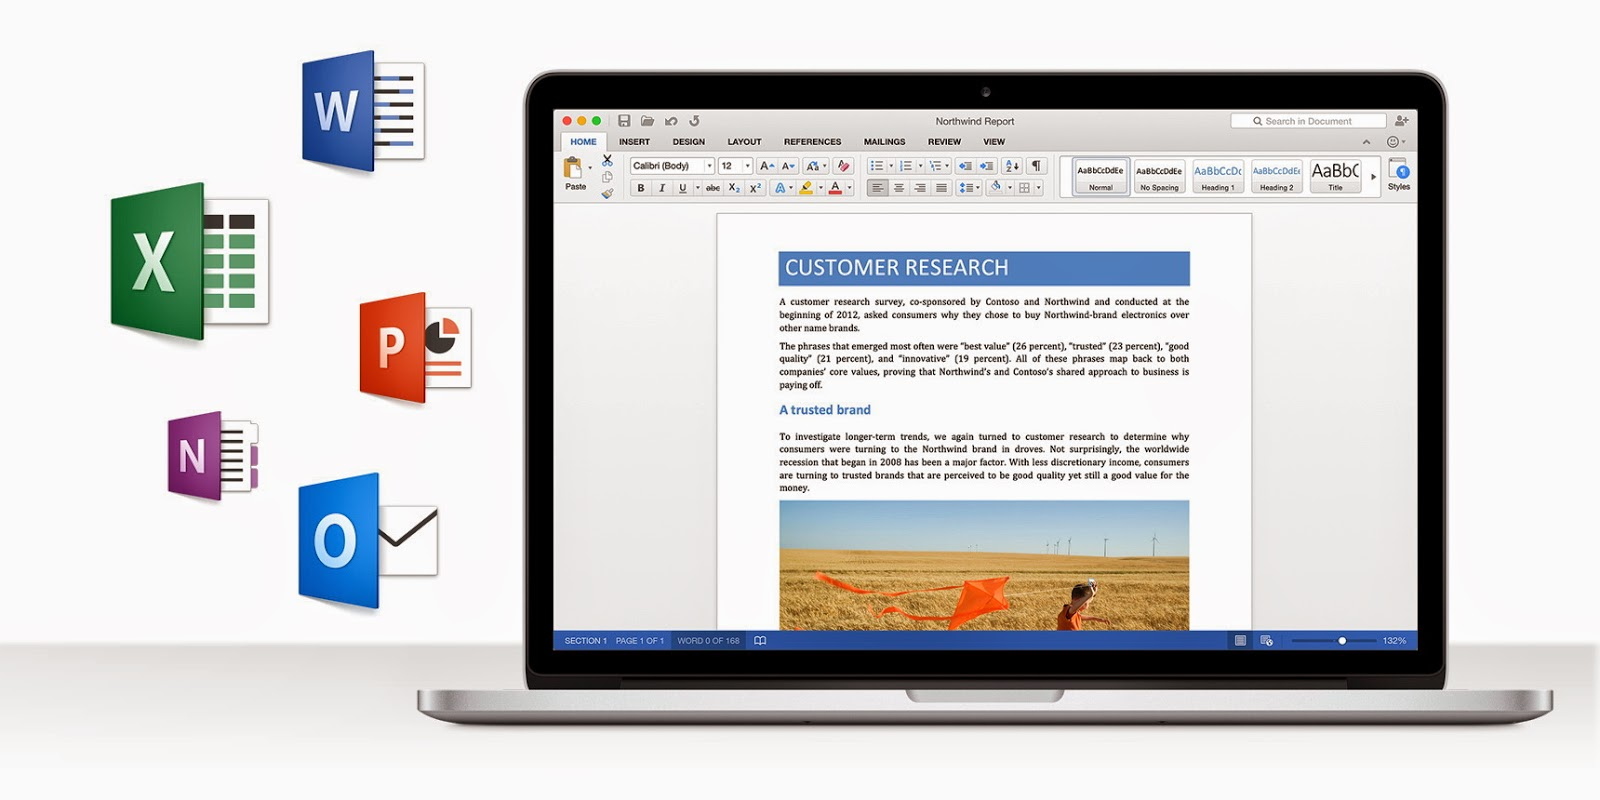 Microsoft Office 2016 Preview Available For Mac As Free